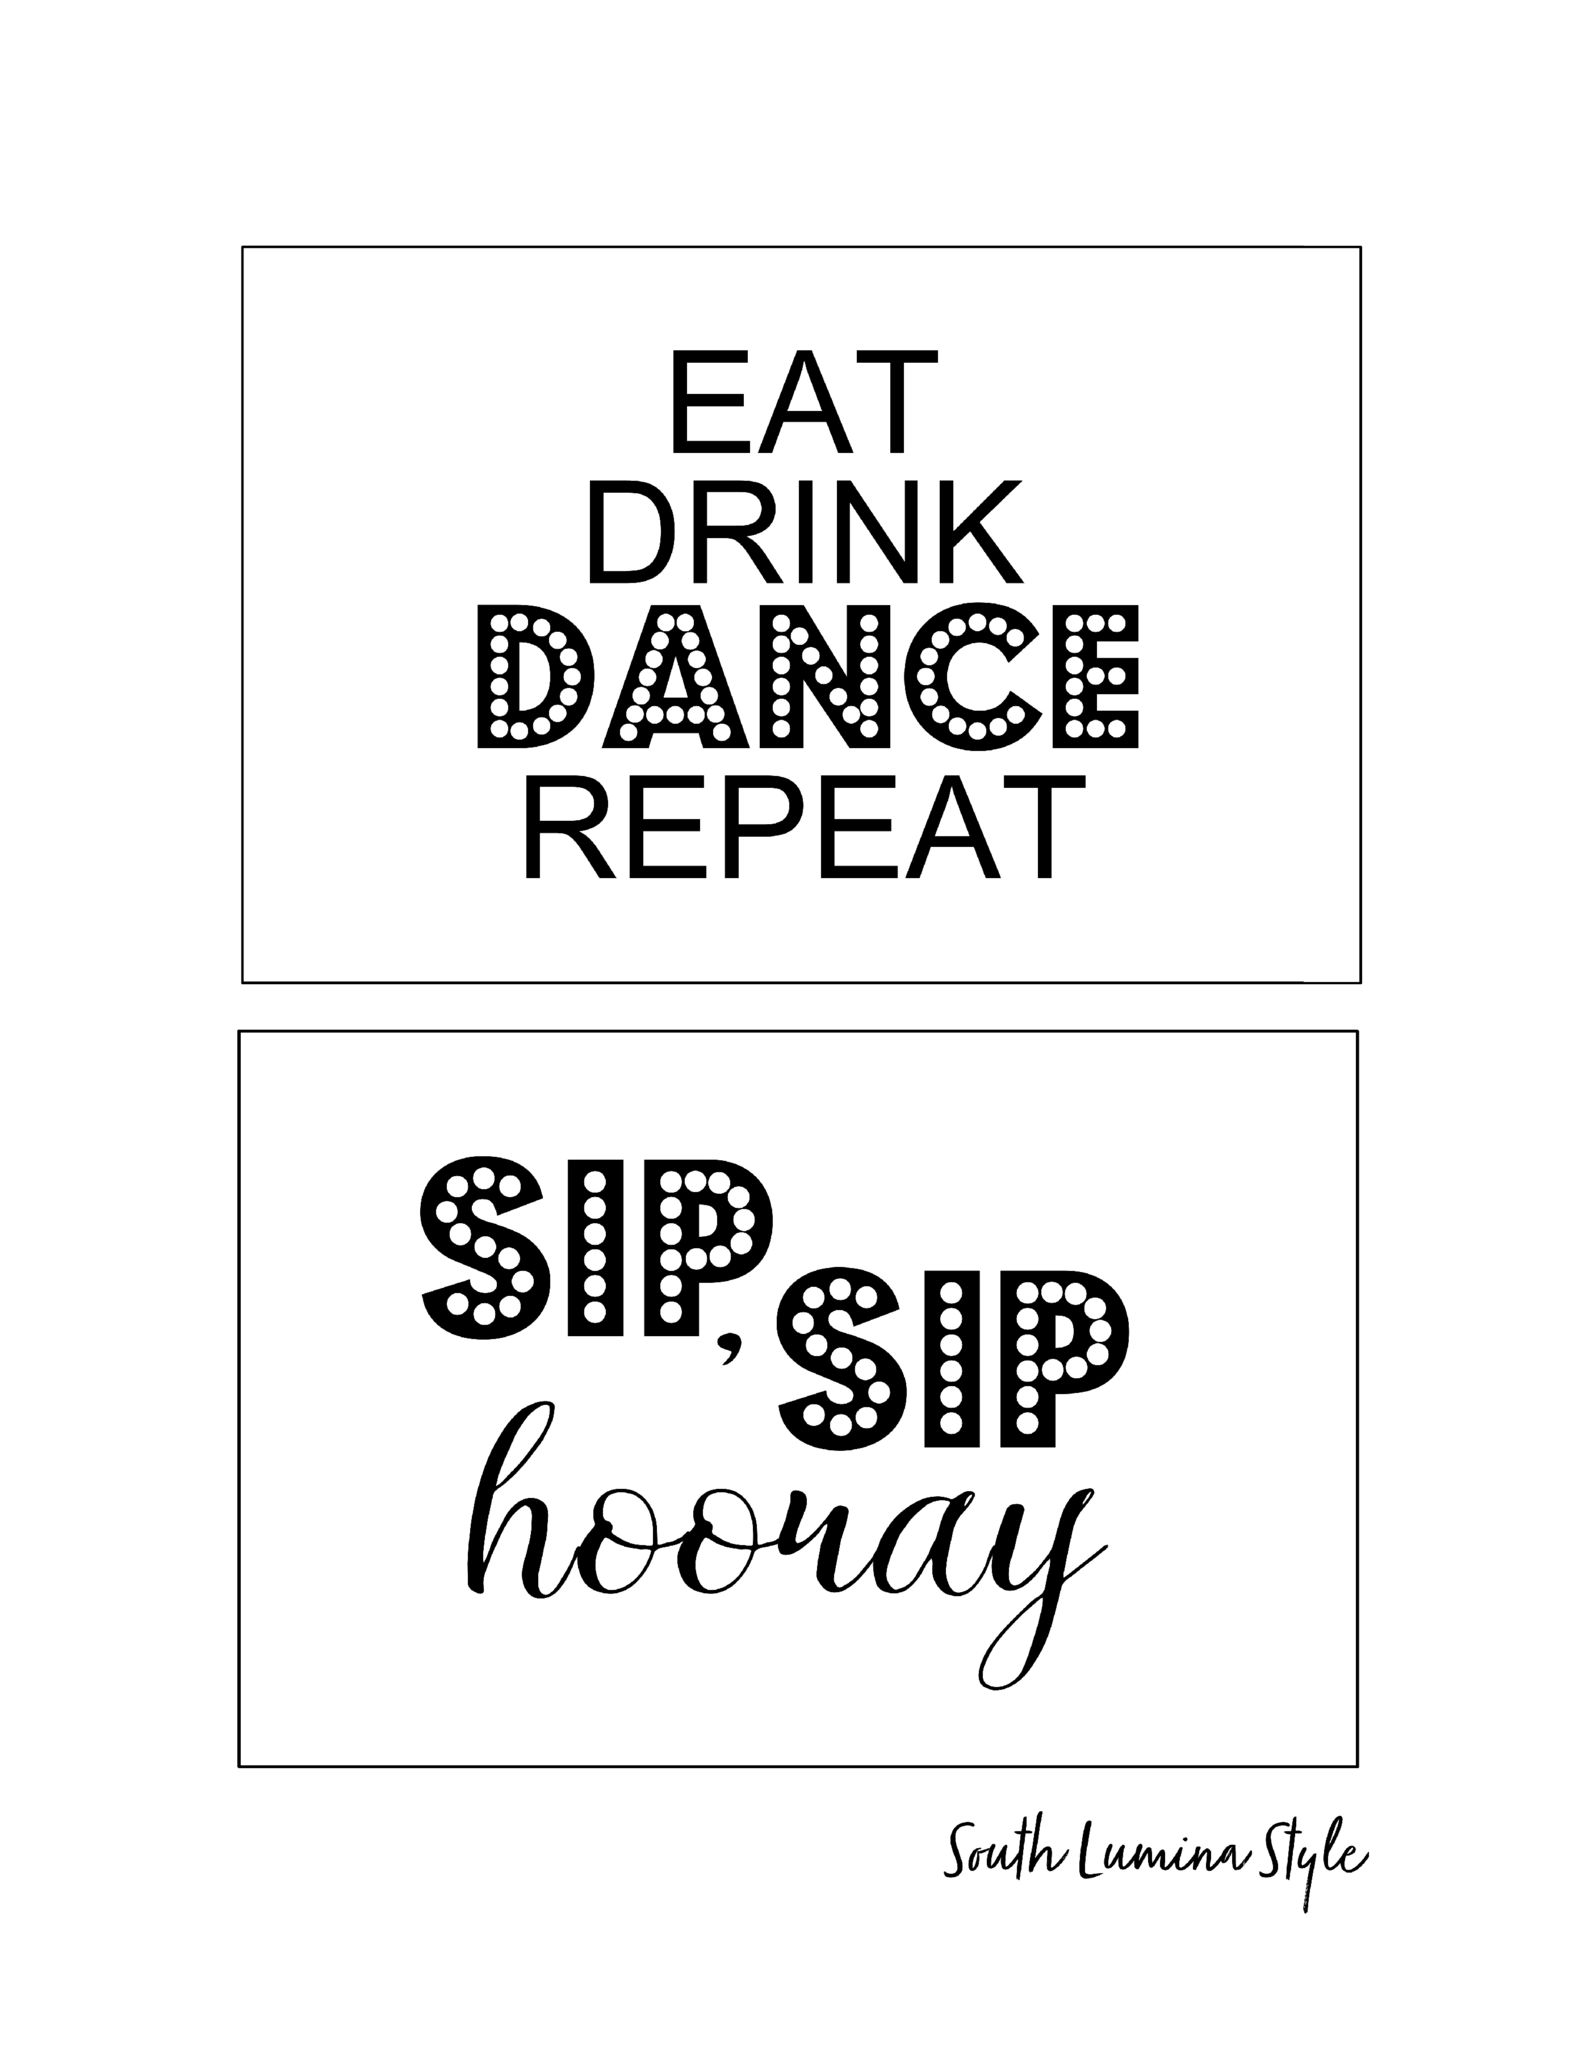 graphic about Sip Sip Hooray Printable referred to as South Lumina Design Do it yourself Printable Grownup Birthday Signs and symptoms Consume